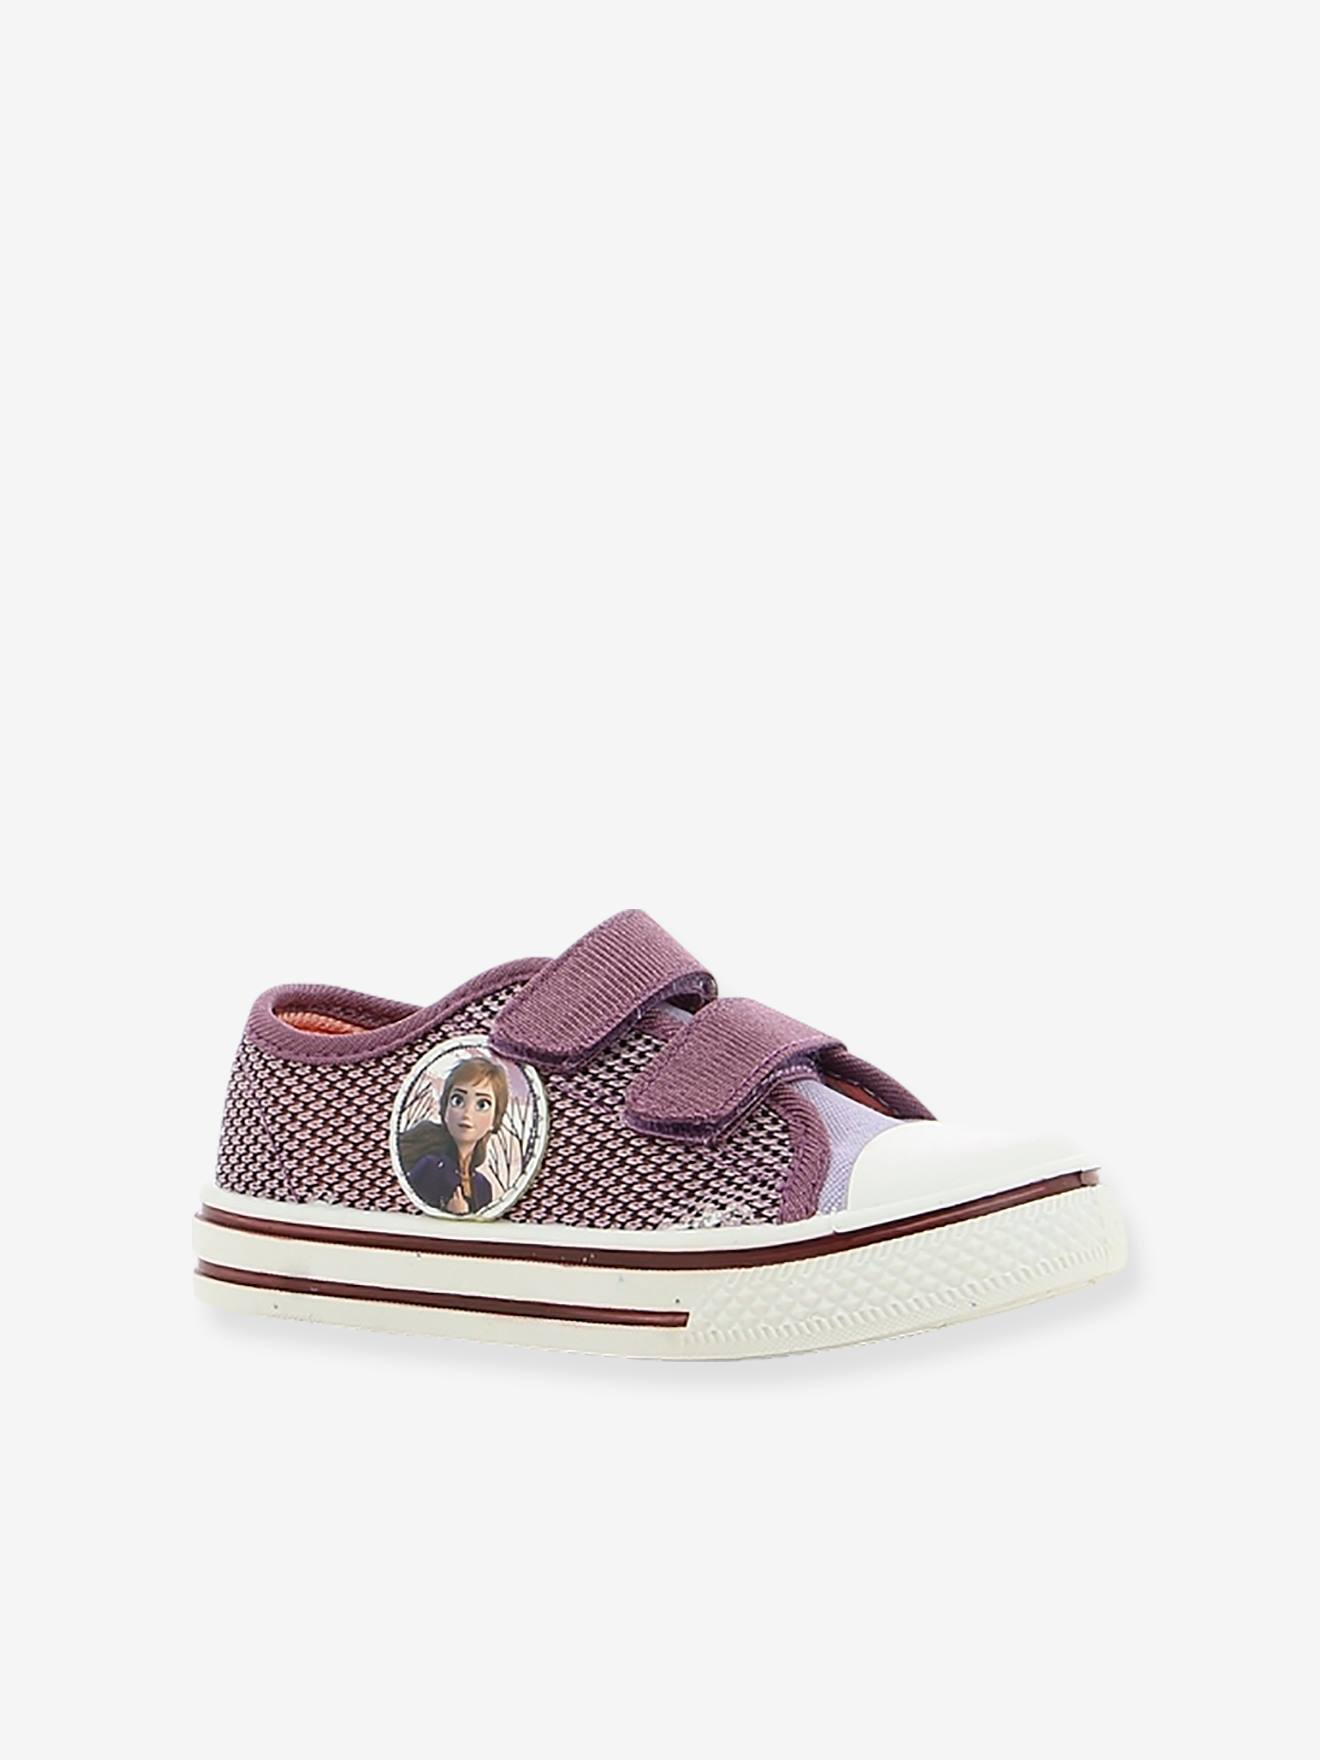 Chaussure fille taille 23